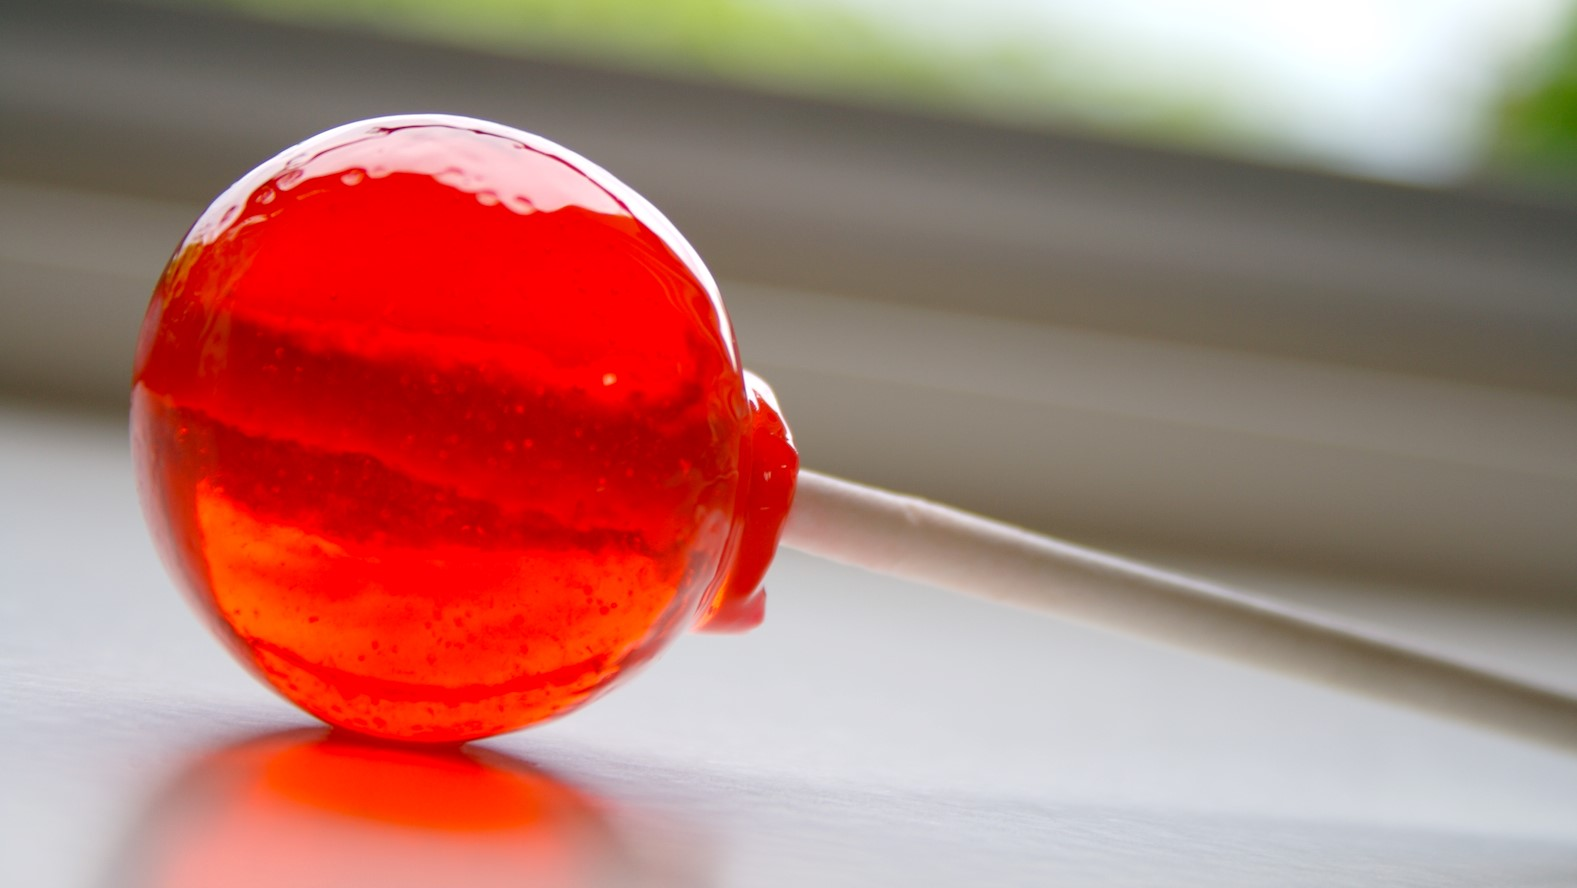 Image: A red lollipop lays on a counter-top reflecting light. One of our favorite motivational speakers, Drew Dudley, takes us through the power of giving lollipop moments.